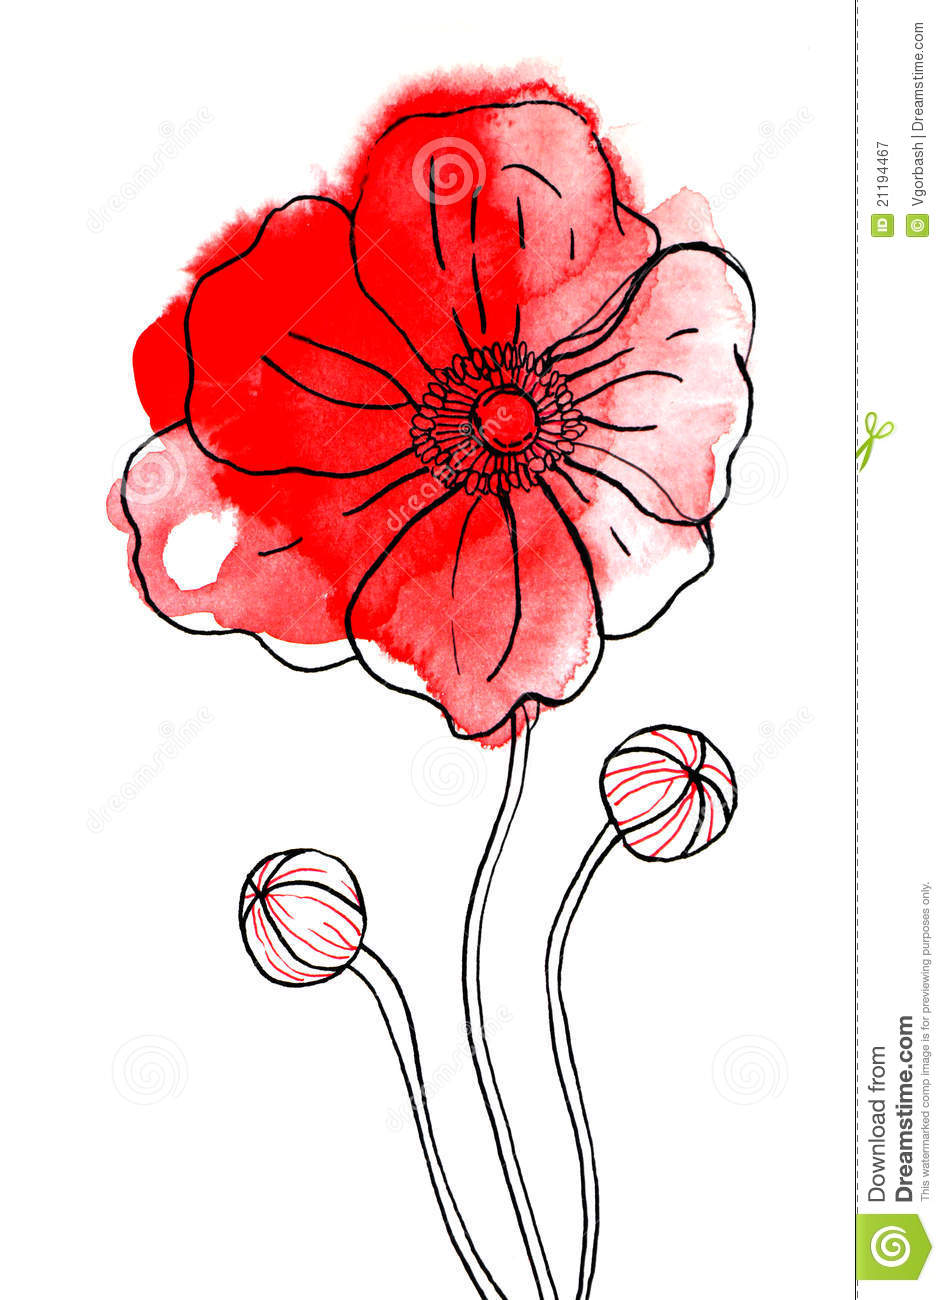 Red peony flower in watercolor